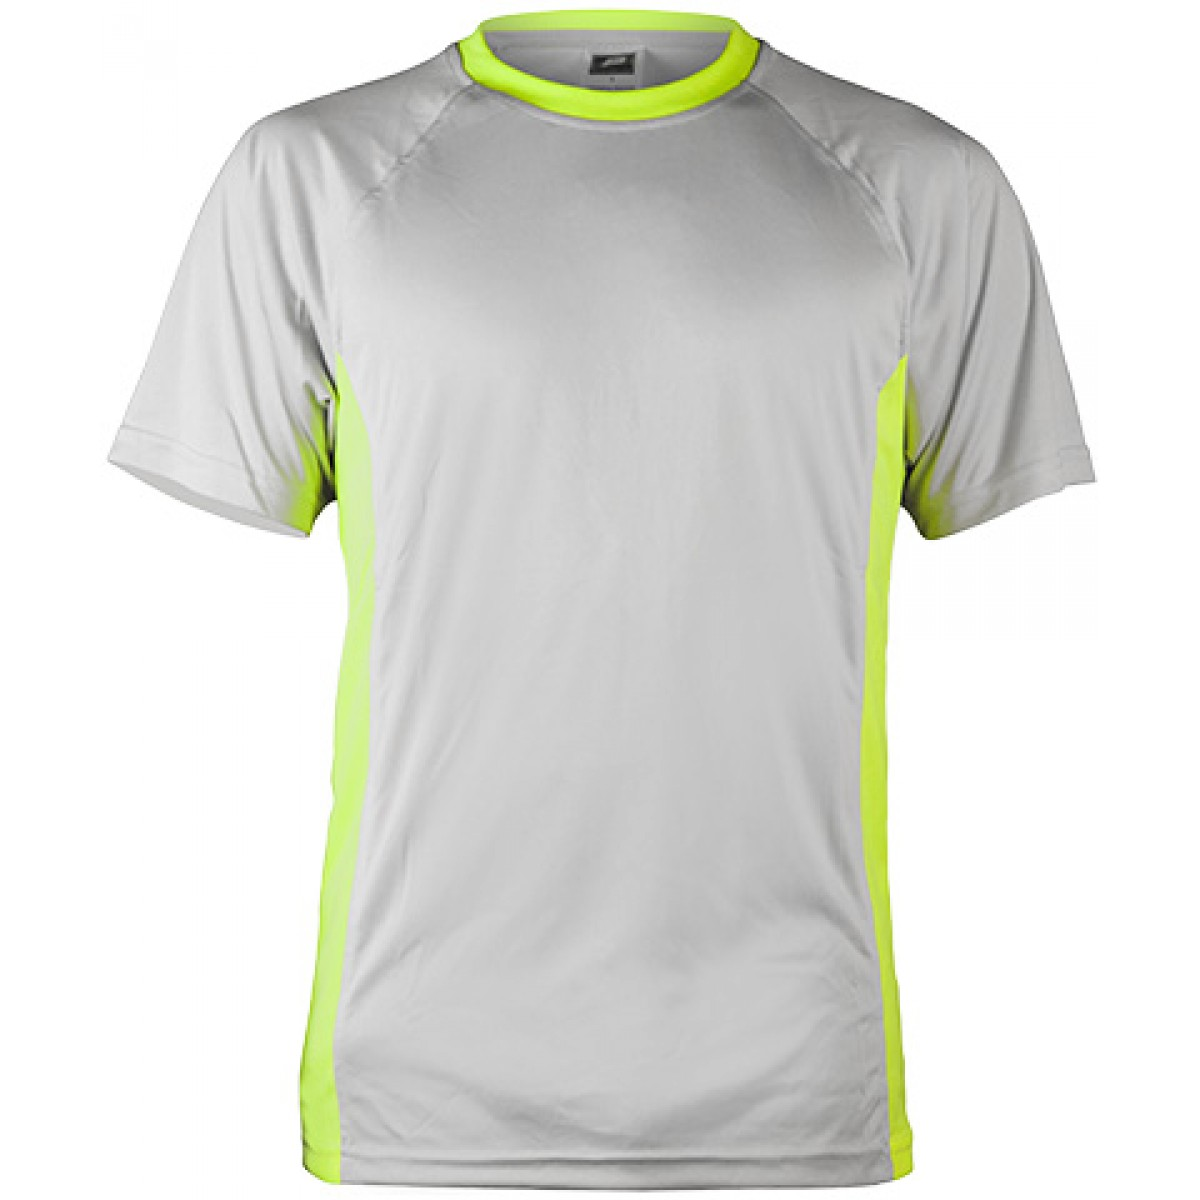 Short Sleeve Performance Fit with Flat-back Mesh Side Insert-Gray/Green-XS